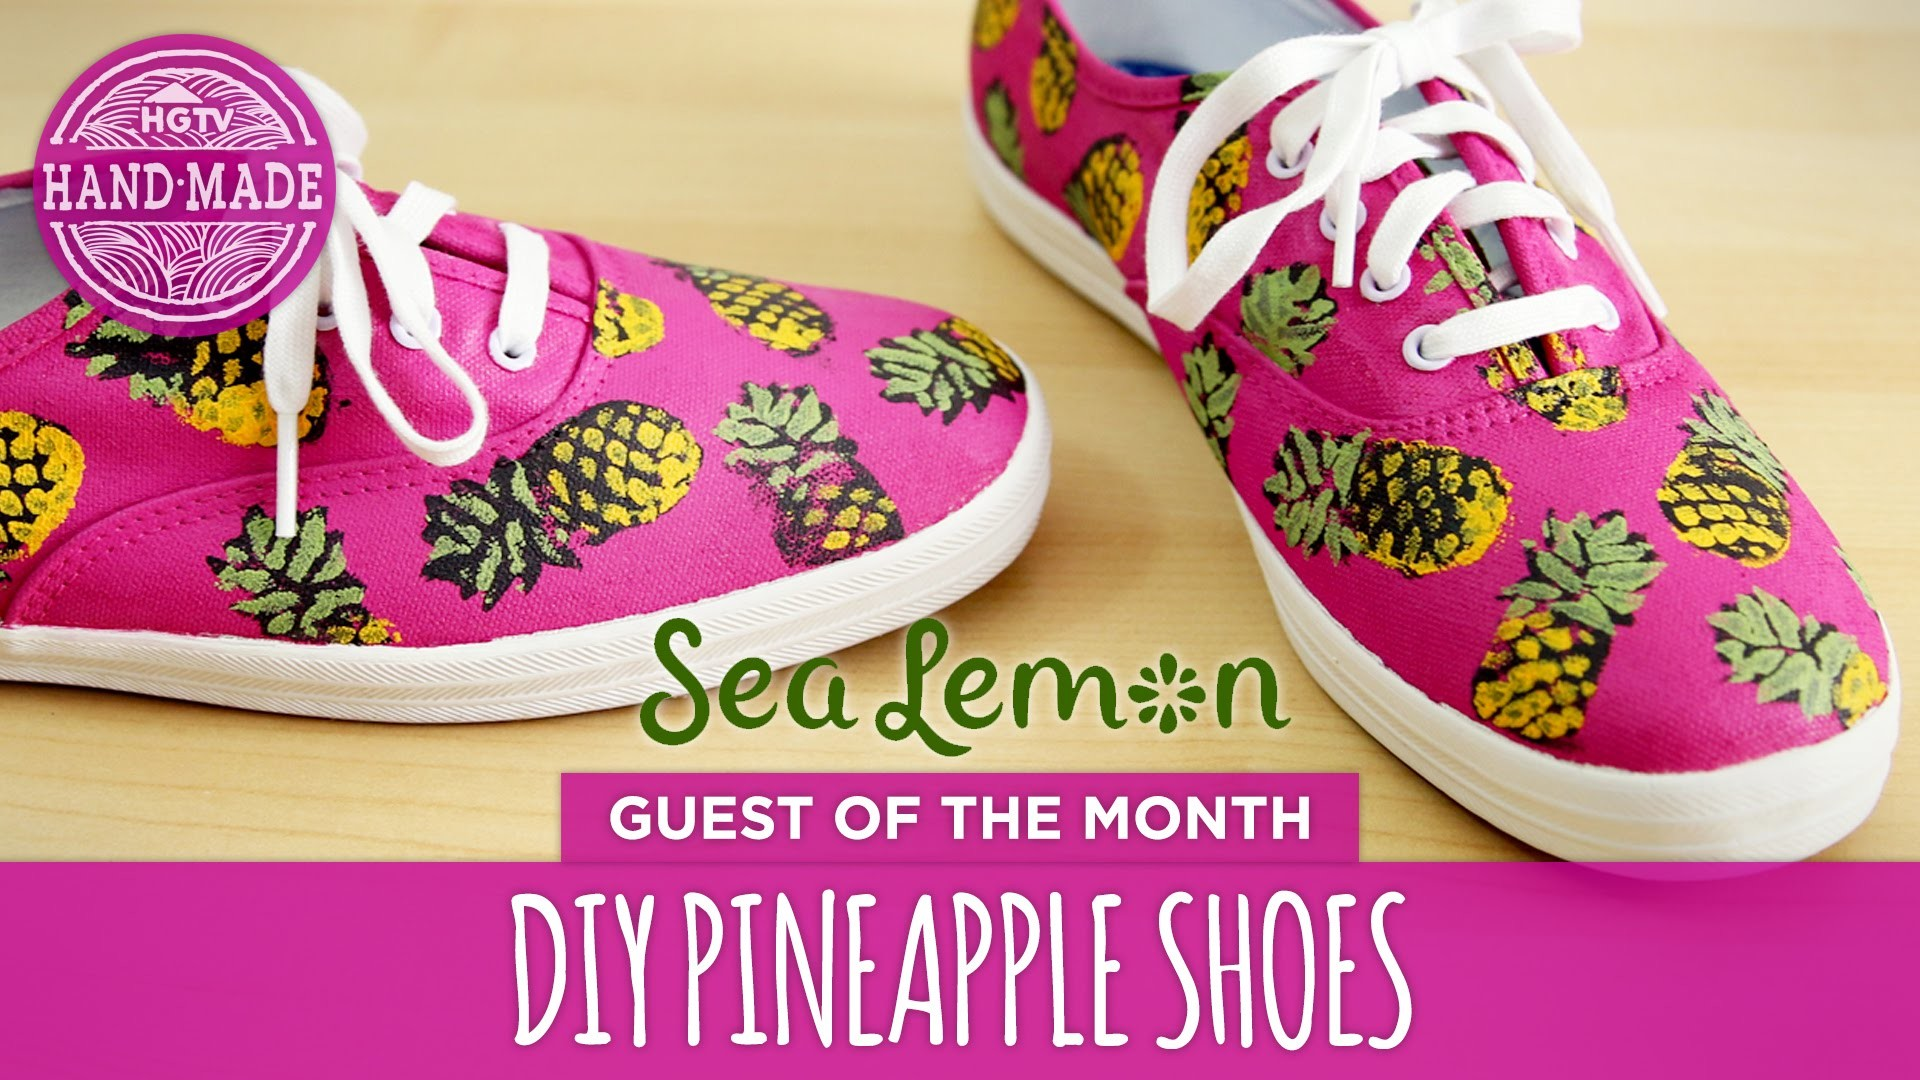 DIY Pineapple Shoes by Sea Lemon - White Shoes Challenge Week - HGTV Handmade